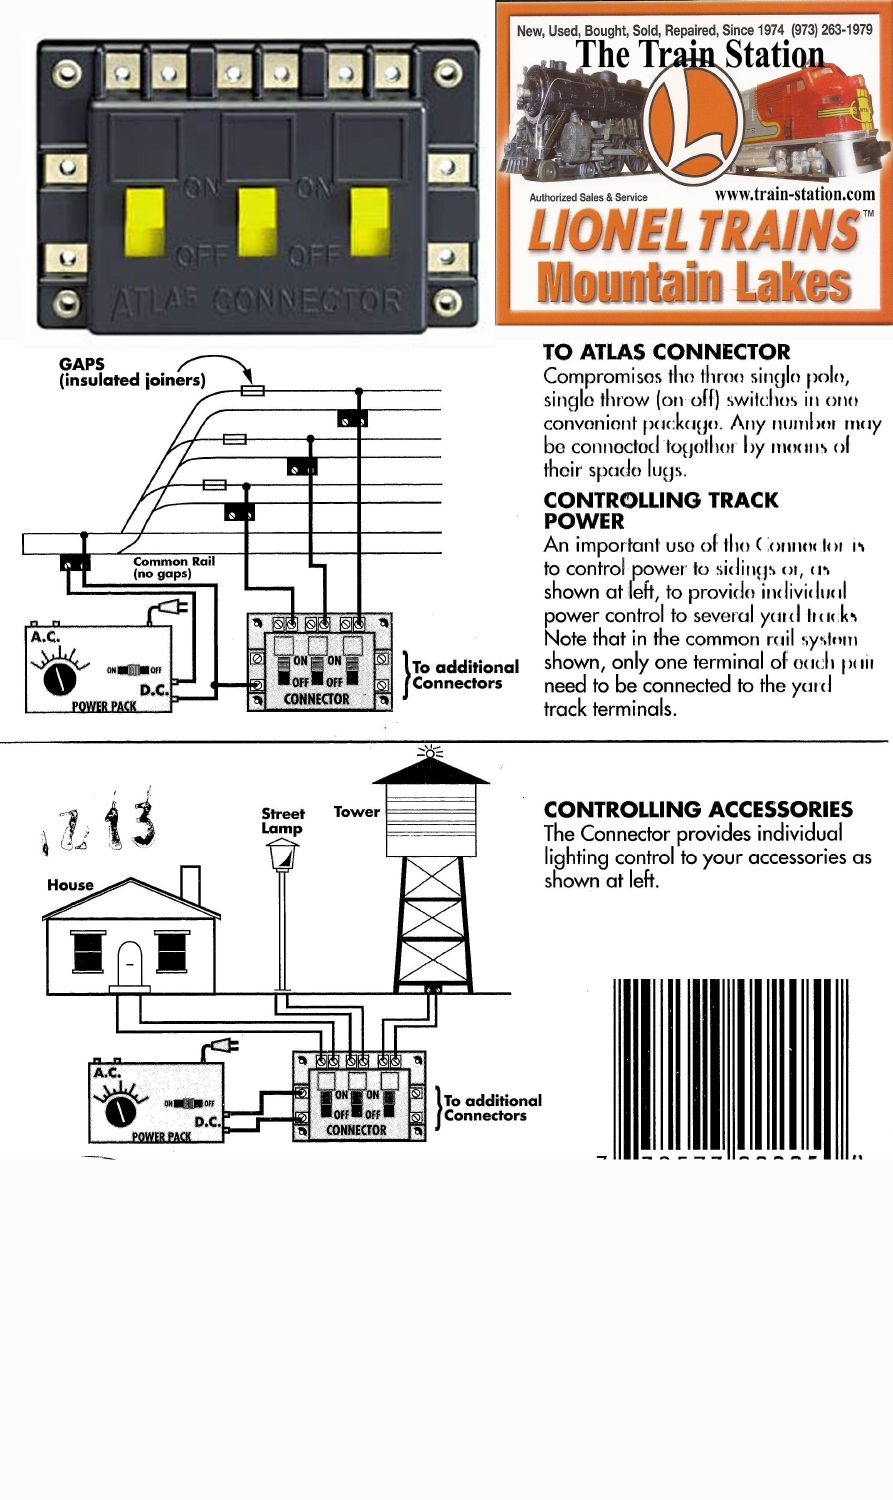 medium resolution of atlas connectors great for wiring any layout see detailed atlas copco wiring diagram atlas connectors